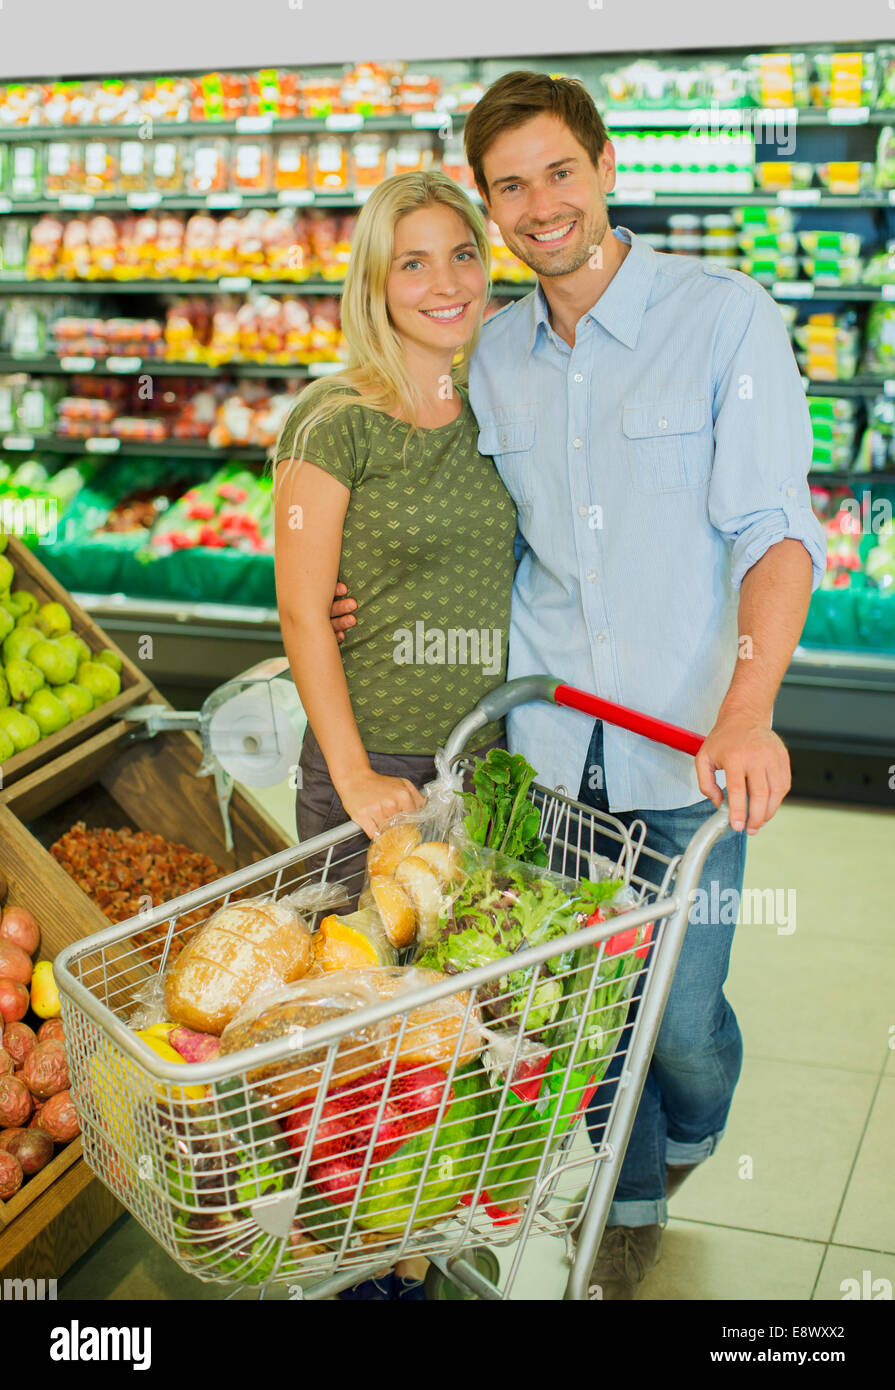 Couple Smiling With Full Shopping Cart In Grocery Store